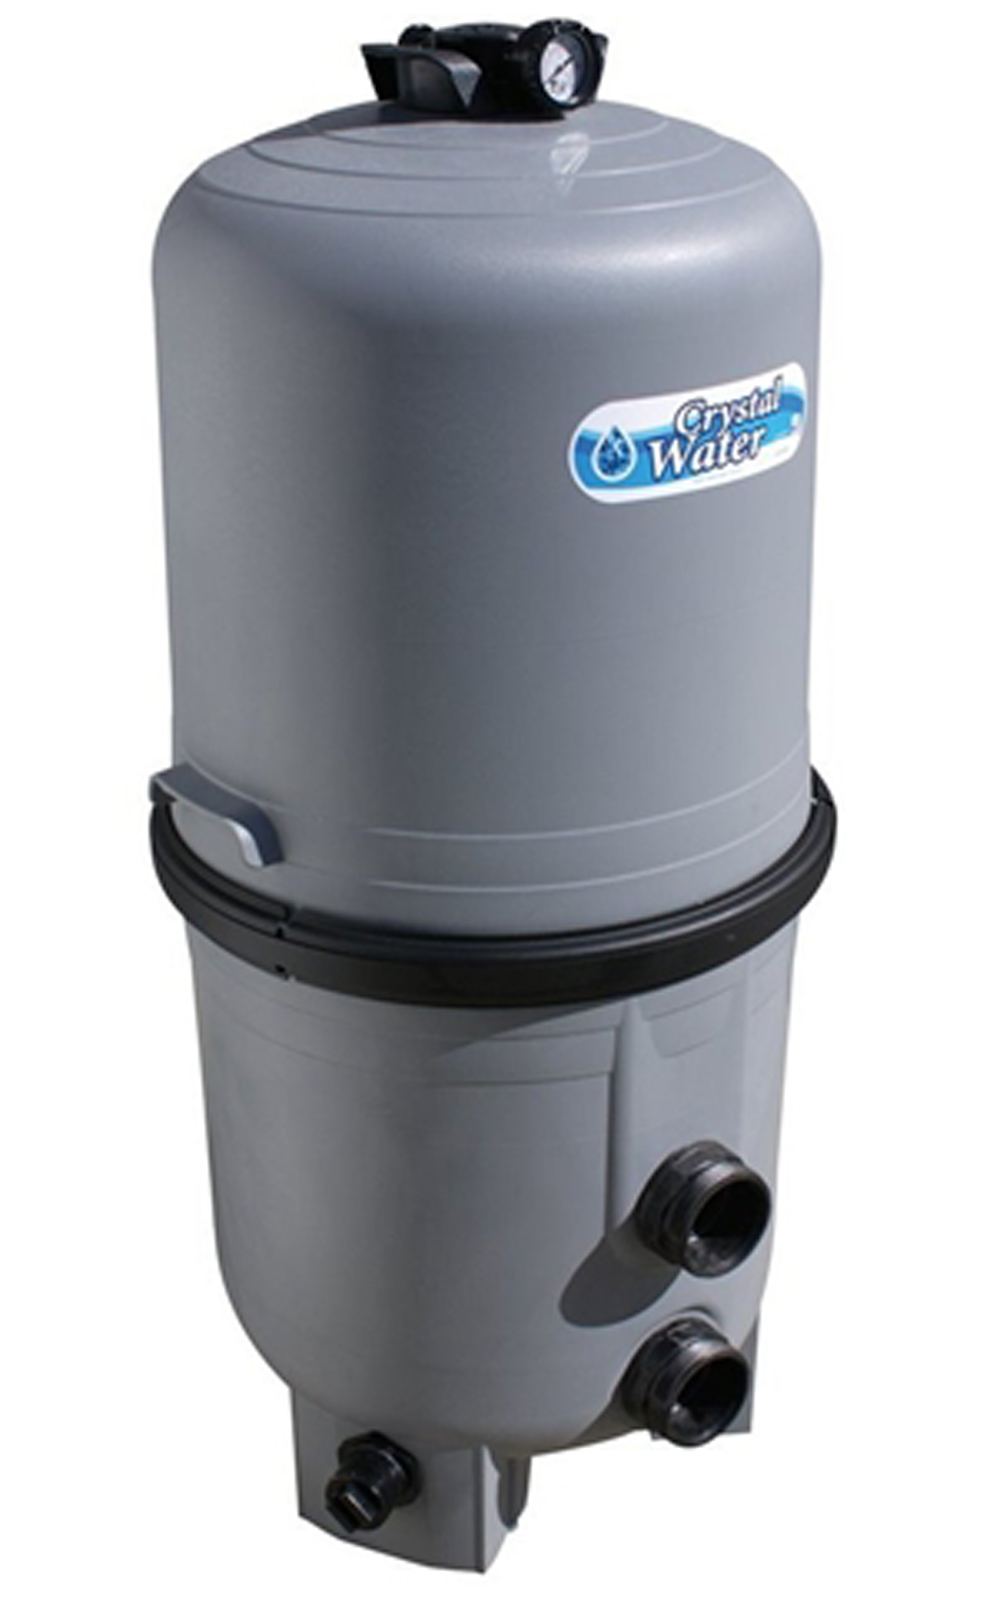 waterway crystal water quad 425 sq ft in ground swimming pool cartridge filter ebay. Black Bedroom Furniture Sets. Home Design Ideas